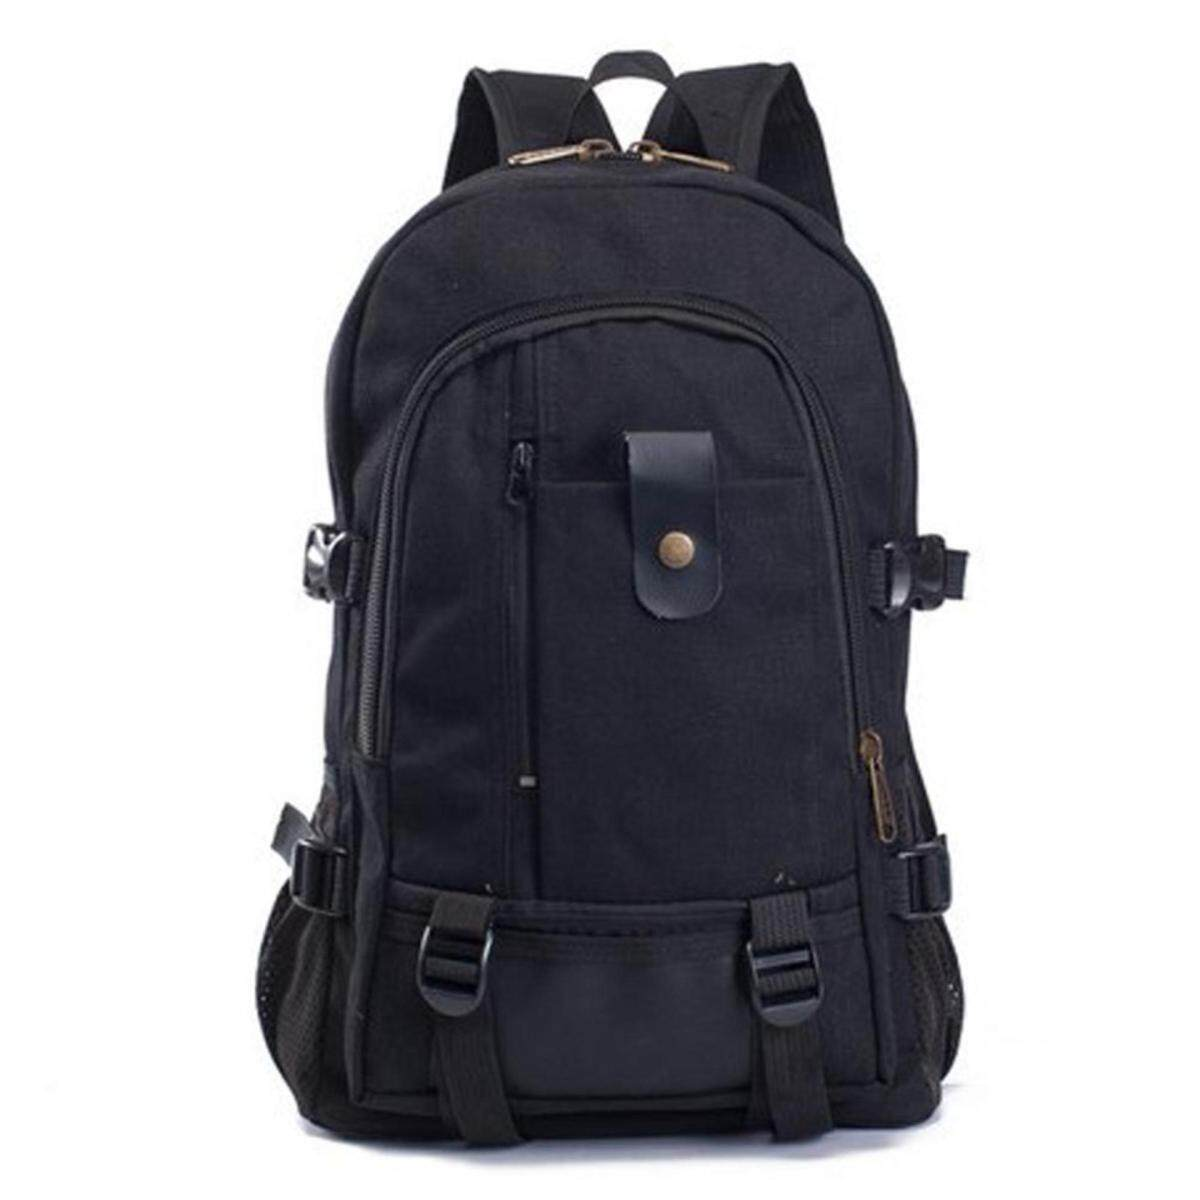 d90ba5a59bc6 Men s Backpacks Outdoor Travel Bags Vintage Style Design School Casual  Canvas Backpack( Black) (